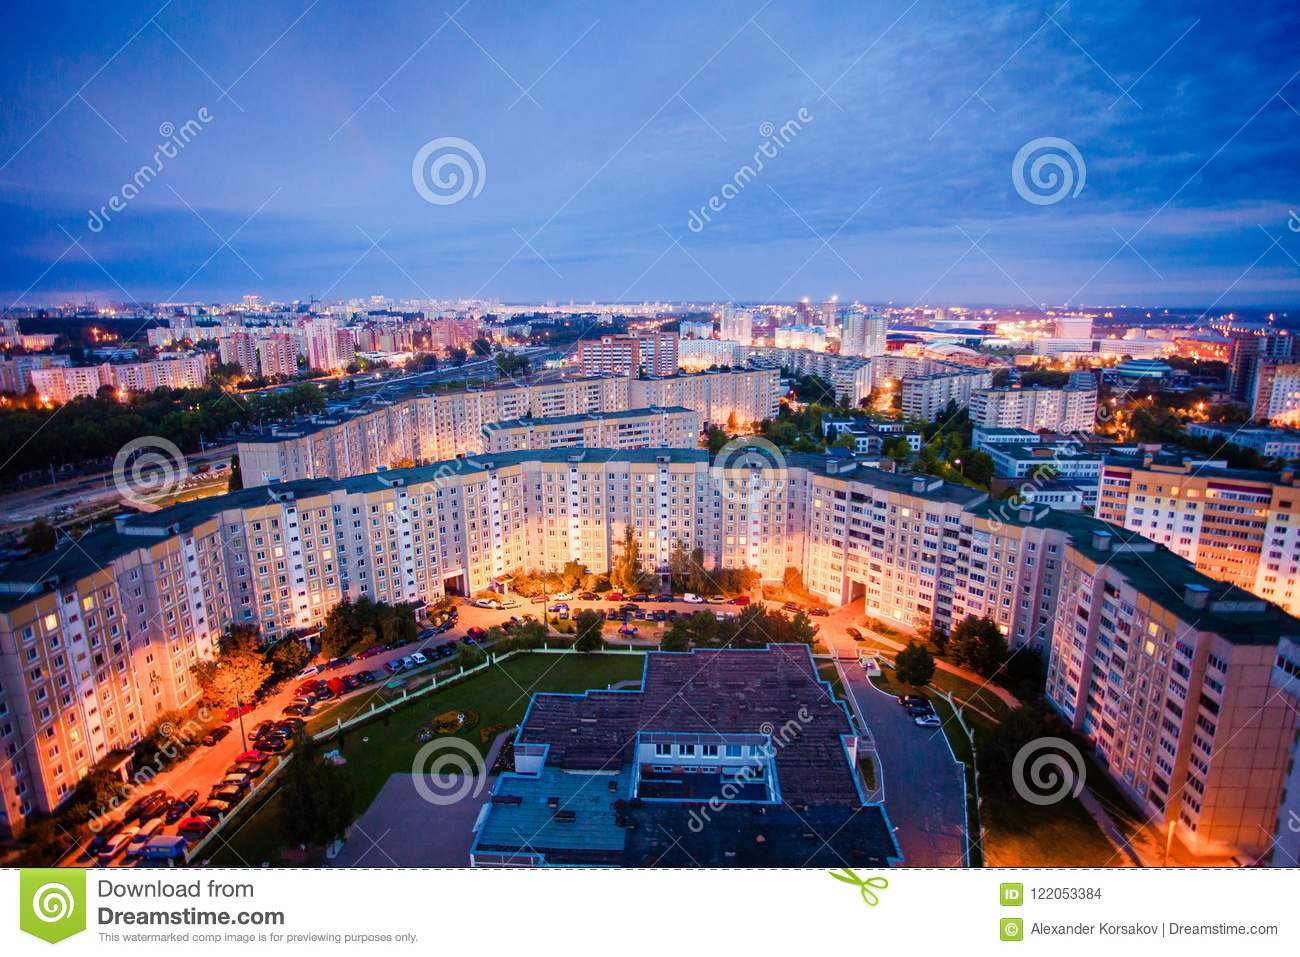 Residential area view at night. Blocks of flats and city lights